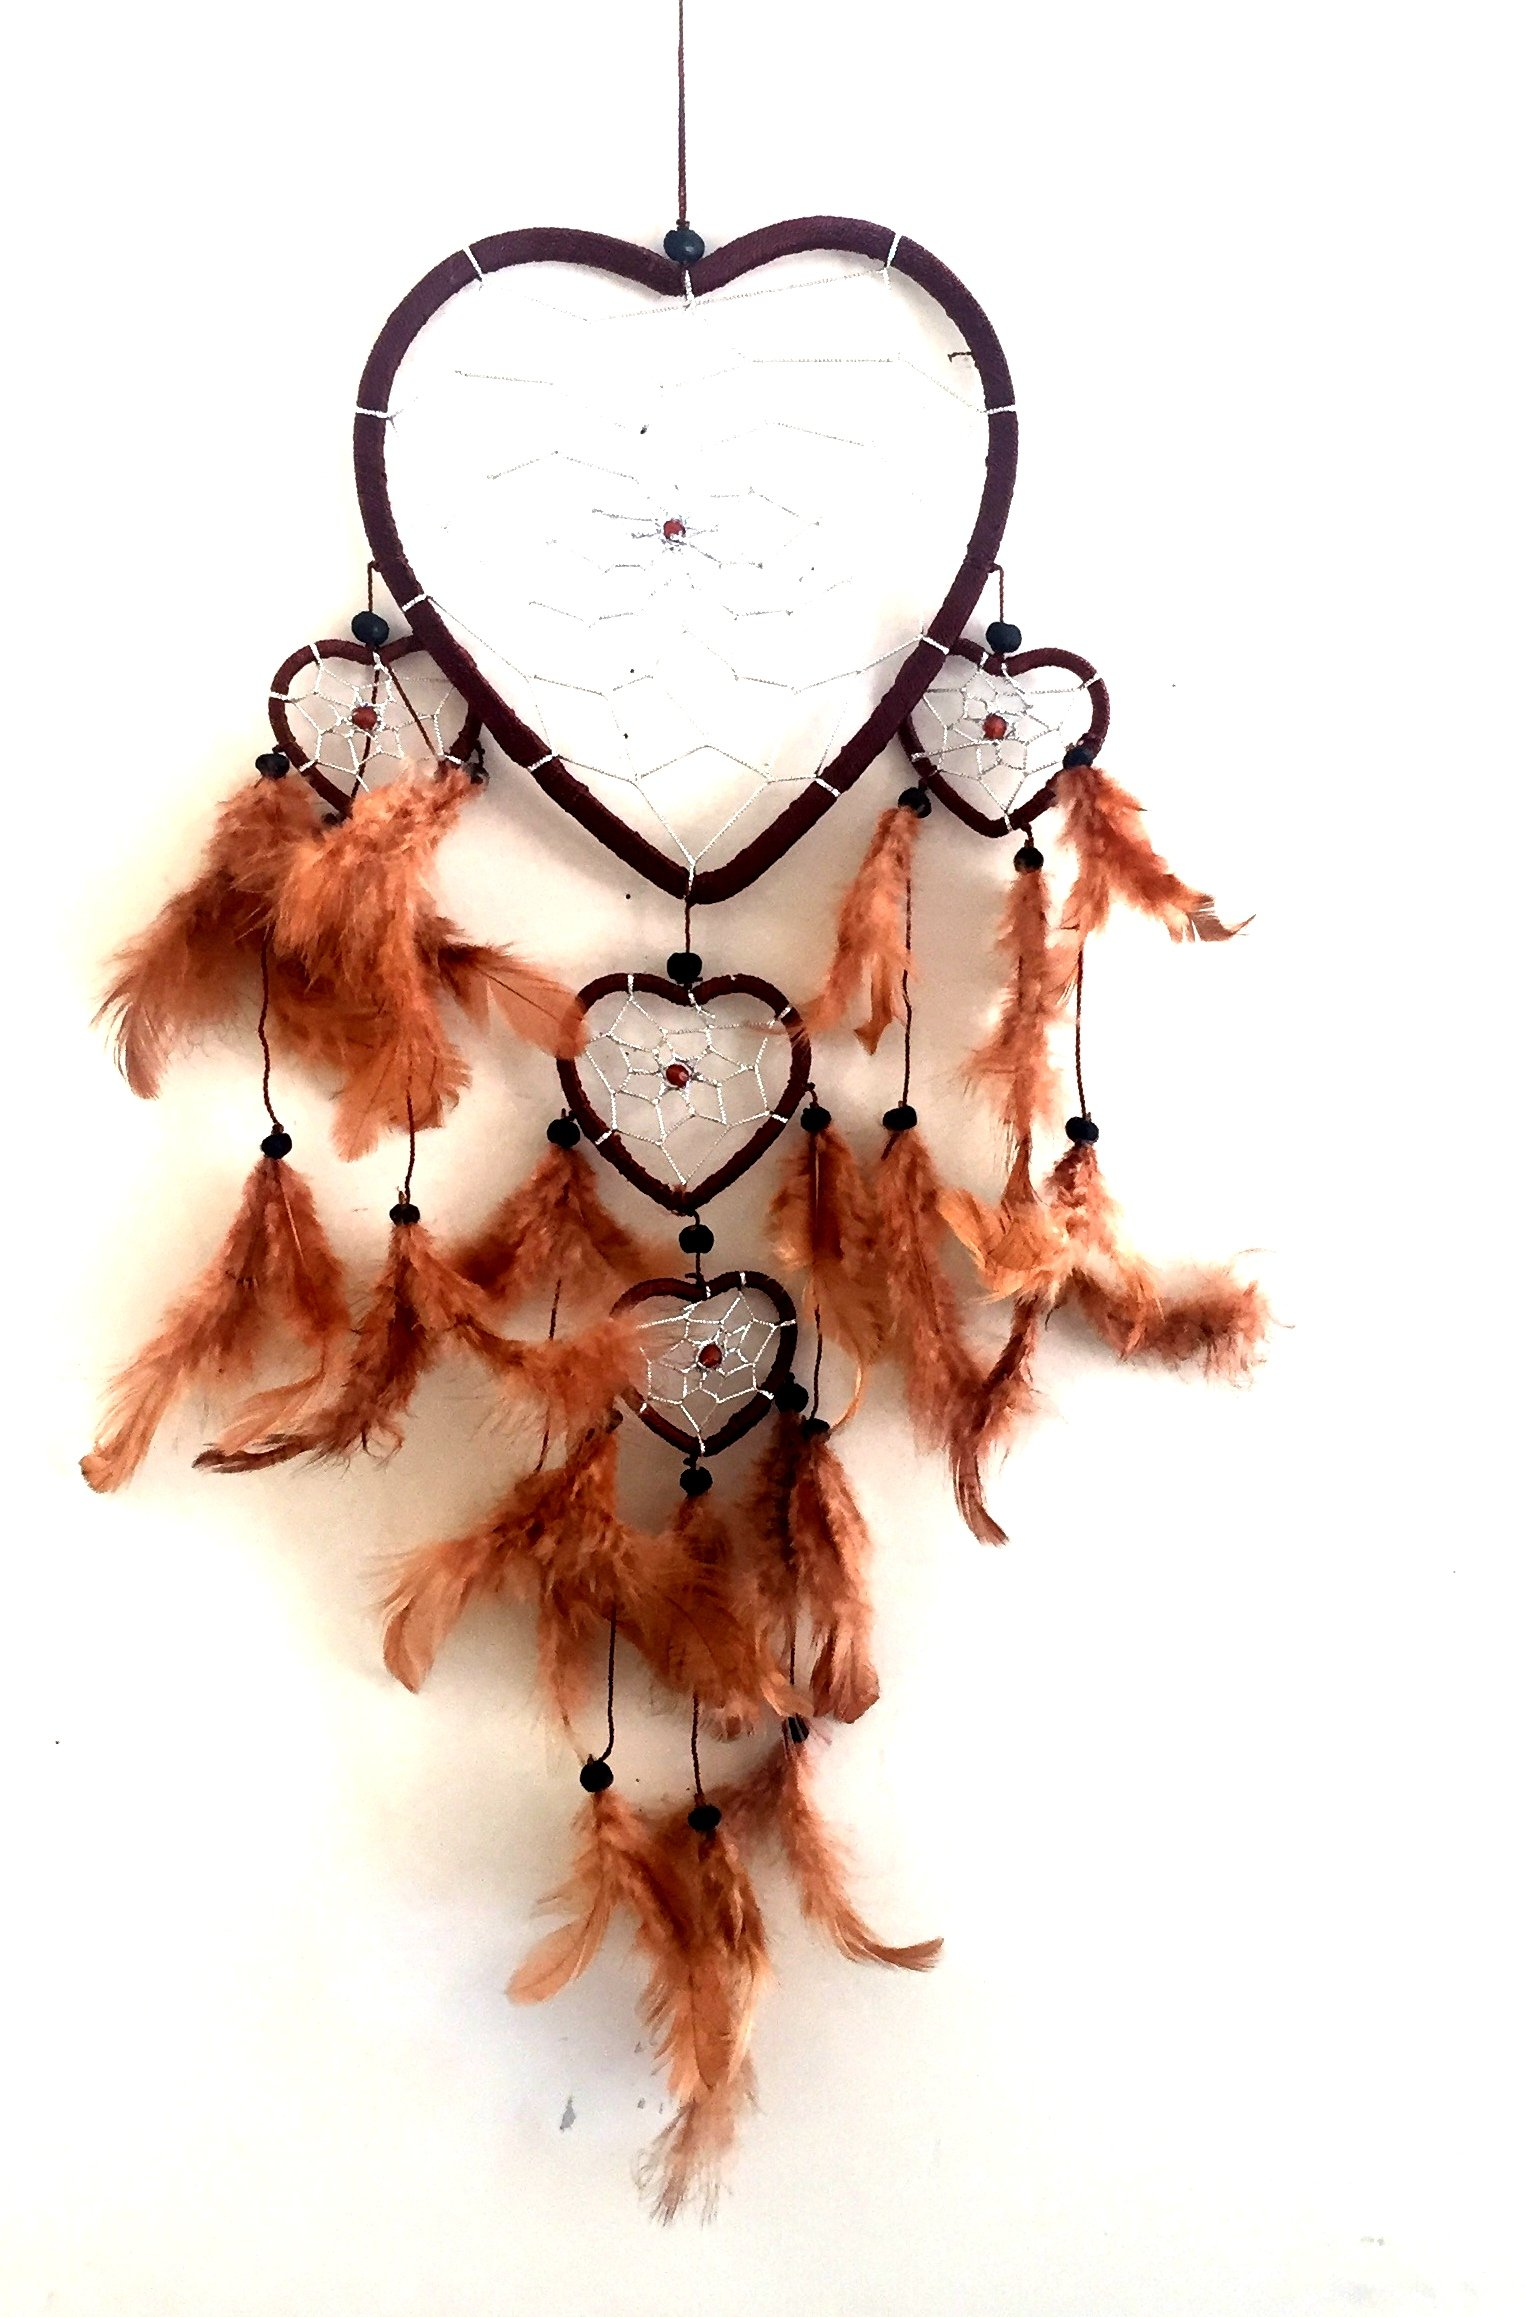 "OMA Dream Catcher - Hand Made BROWN Feather Dream Catcher Heart Shaped With Crystal Beads - 7"" Diameter & 24"" Long - OMA FEDERAL (TM) BRAND"